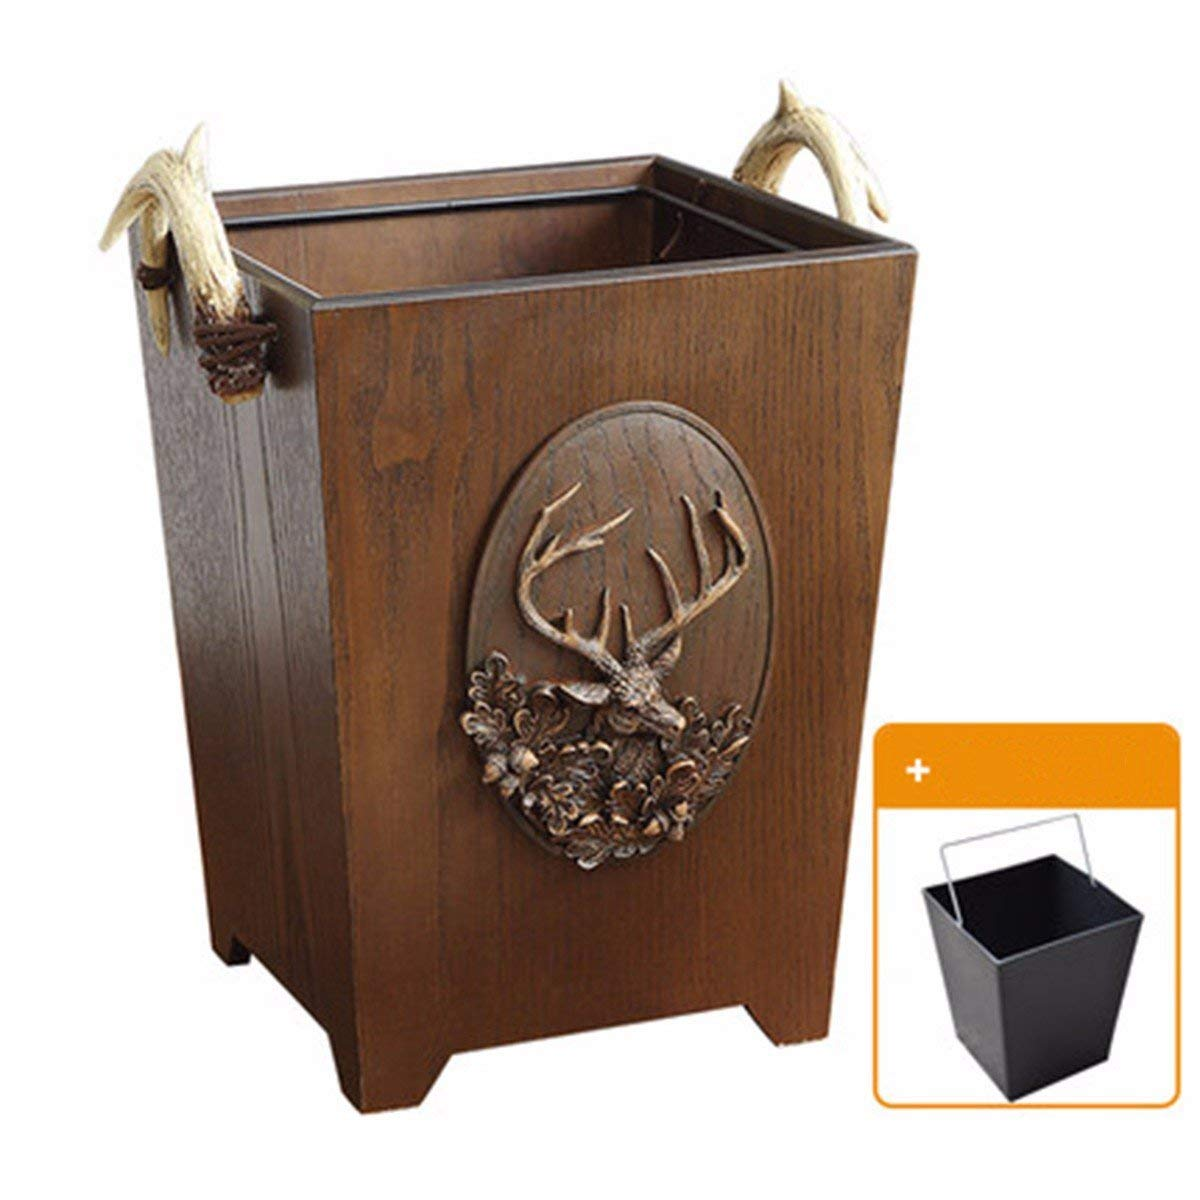 Cheap Wood Kitchen Trash Bins Find Wood Kitchen Trash Bins Deals On Line At Alibaba Com